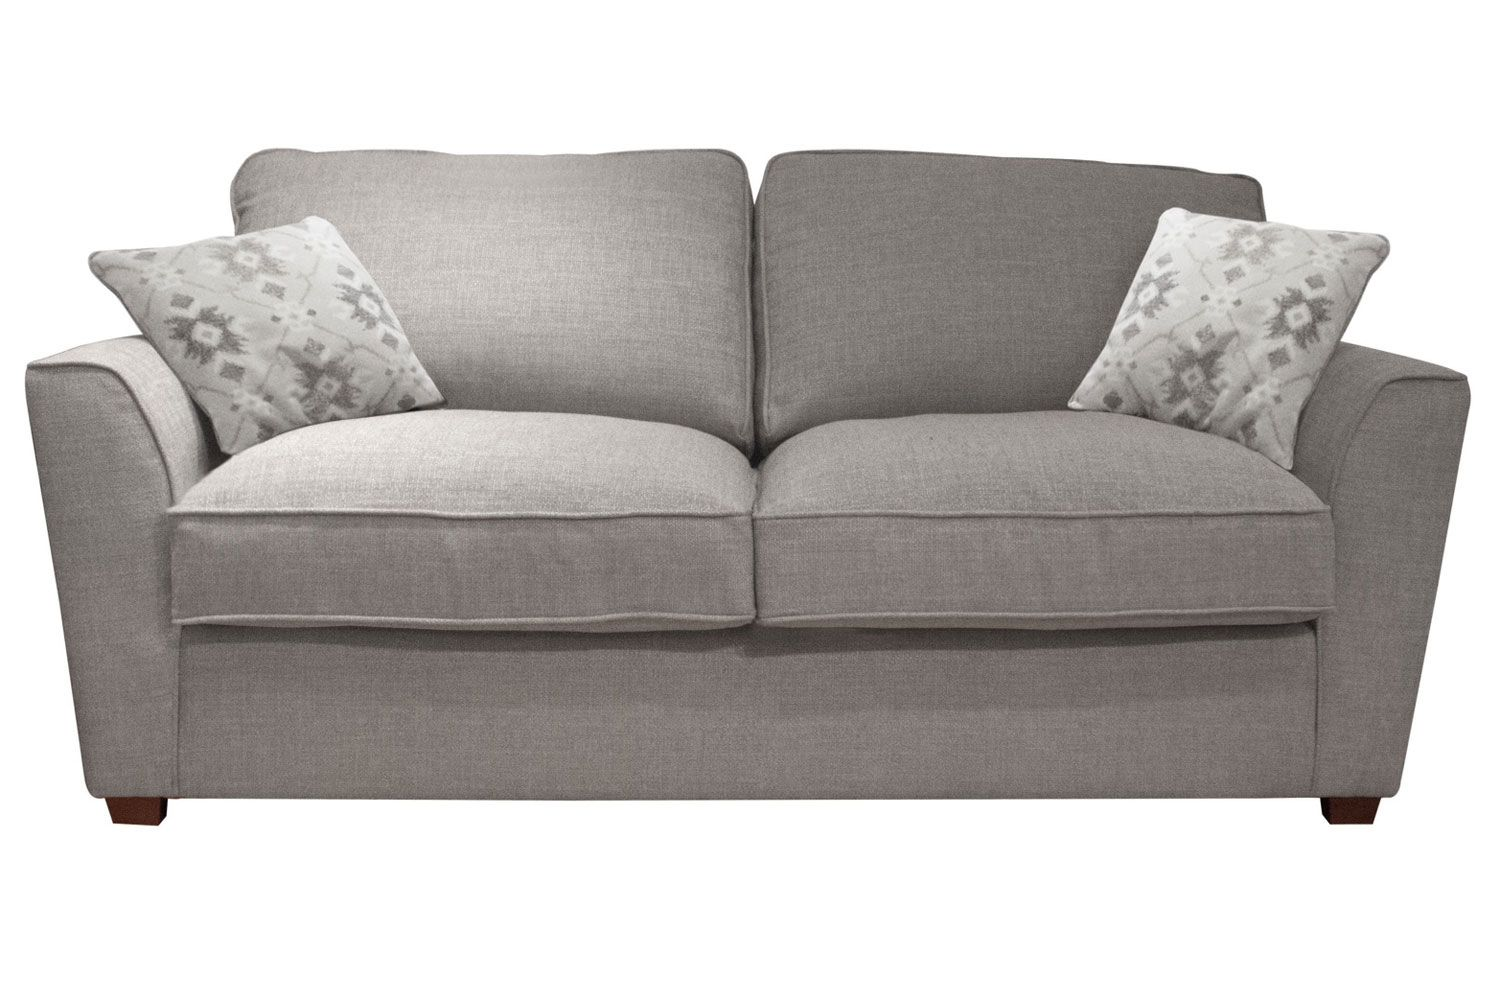 Fantasia corner sofa fabric sofas shop at harvey Fabric sofas and loveseats